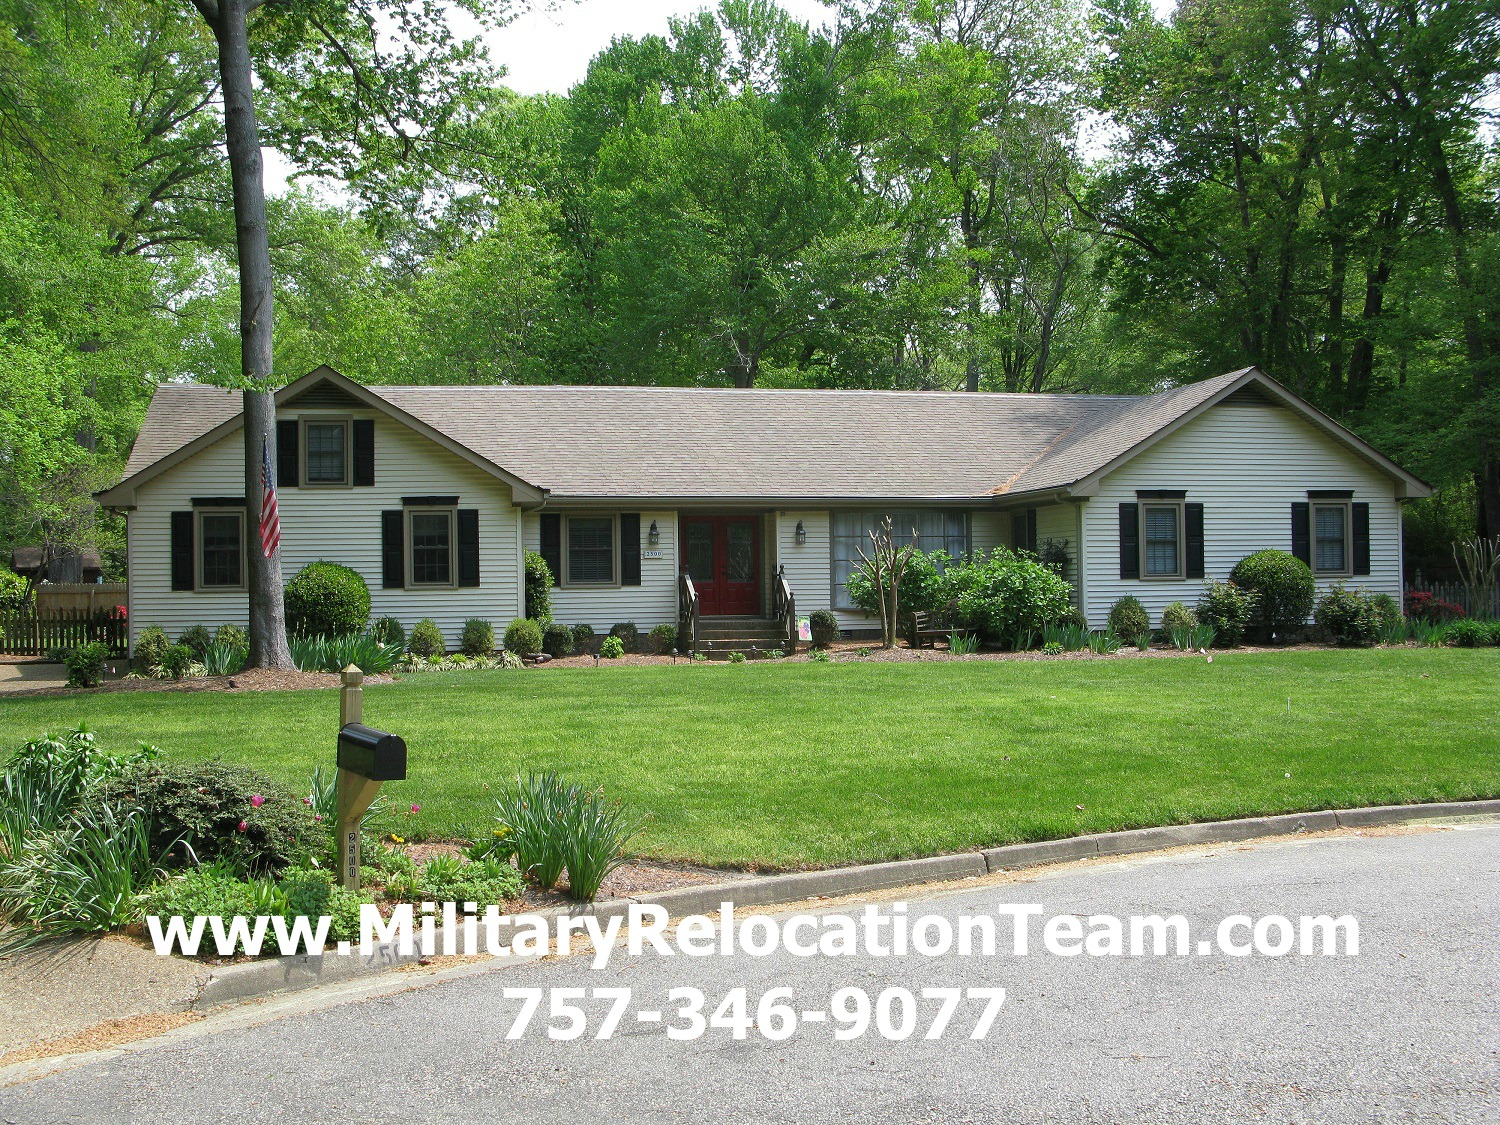 2500 San Marco Circle Virginia Beach VA 23456 For Rent by The Hampton Roads Military Relocation Team